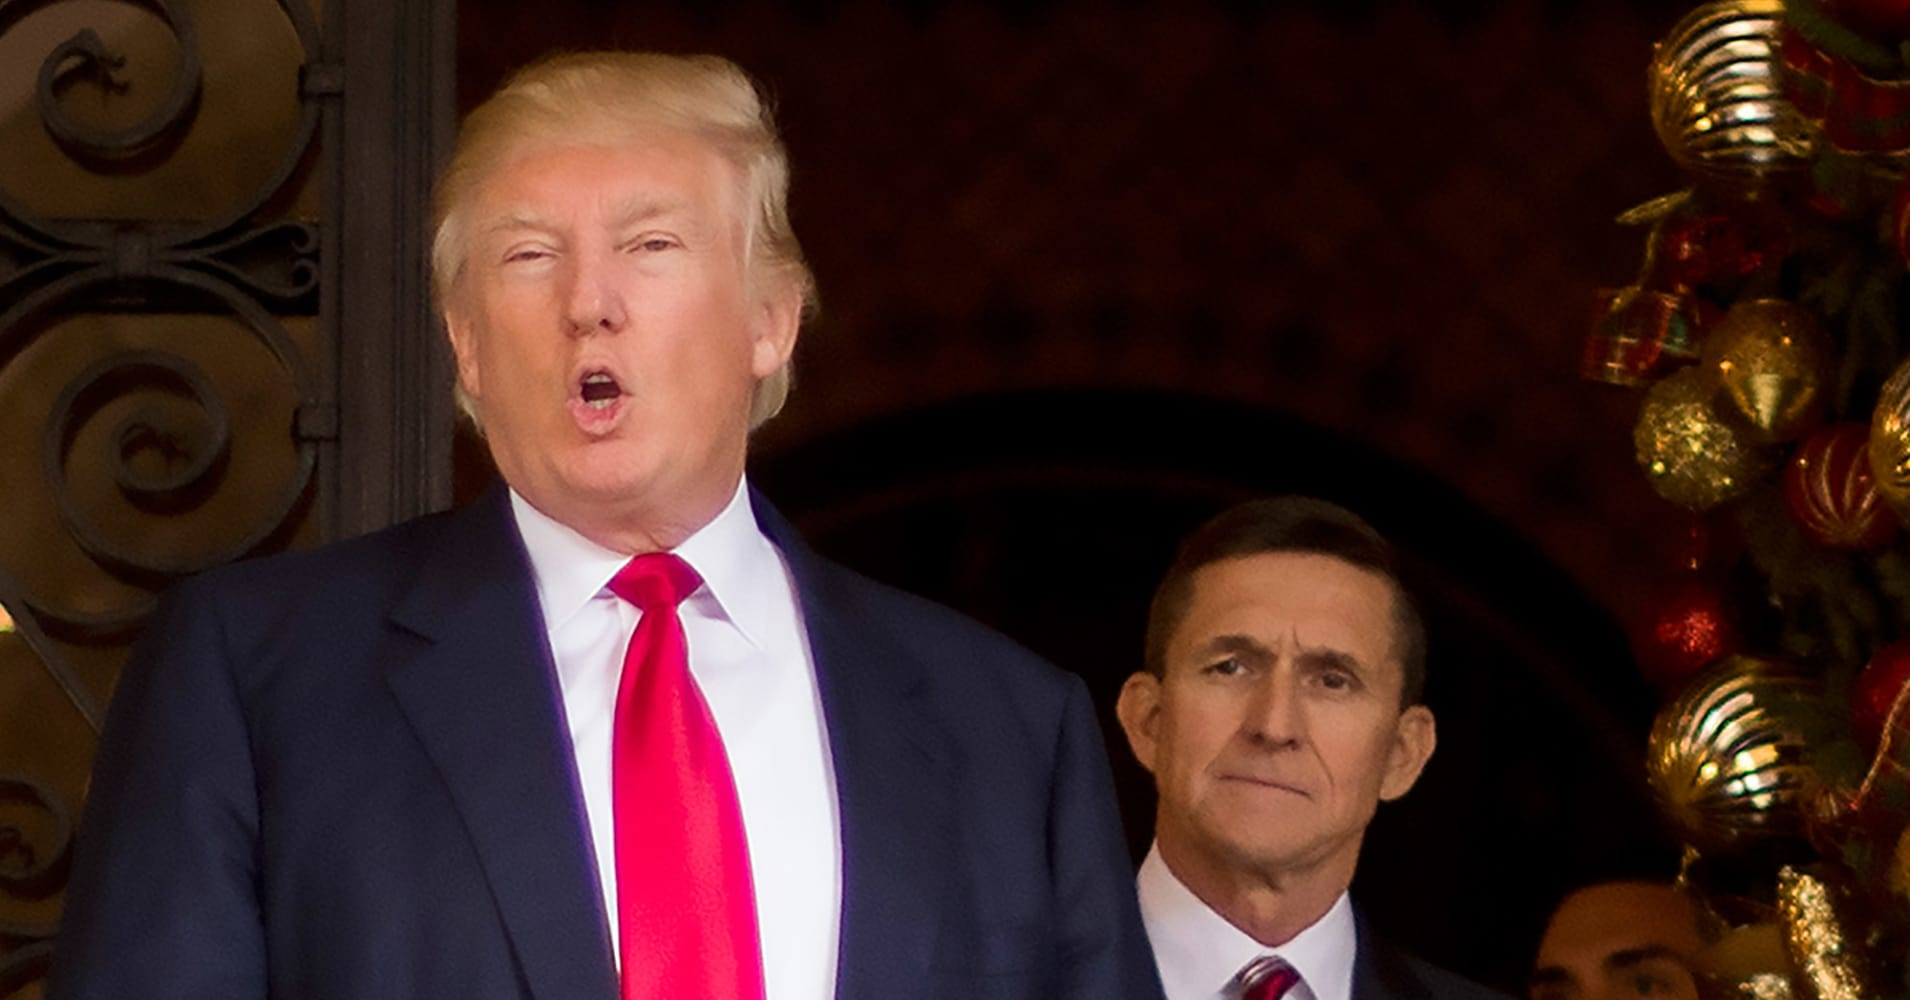 Trump declines to say when he knew Flynn lied to the FBI: 'You know the answer'